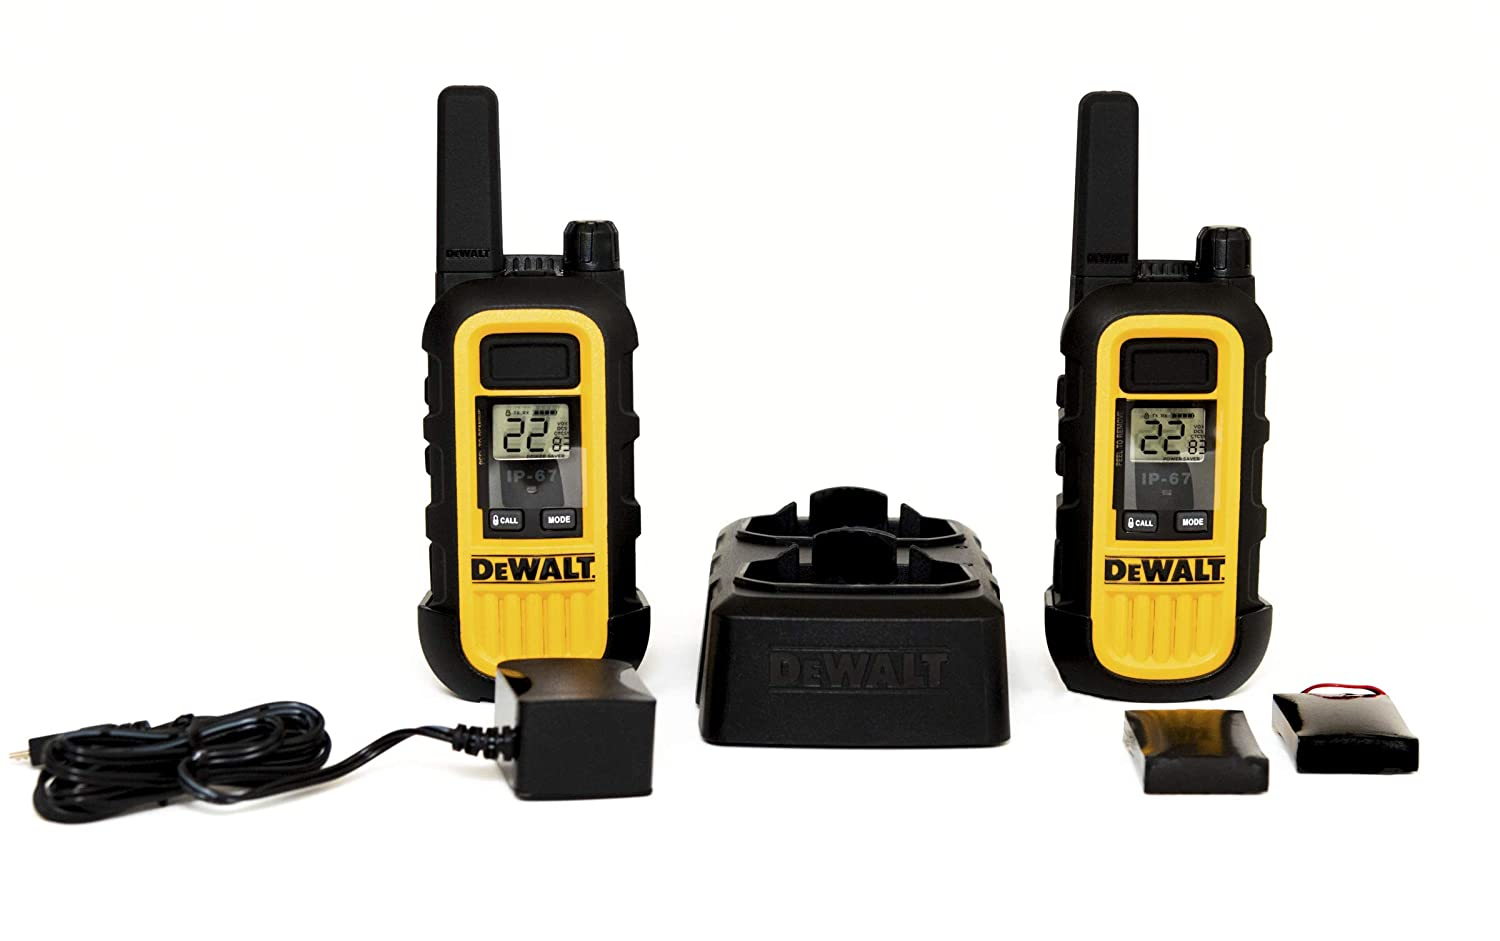 DeWALT DXFRS300 Walkie Talkies Heavy Duty Business Two-Way Radios (Pair)